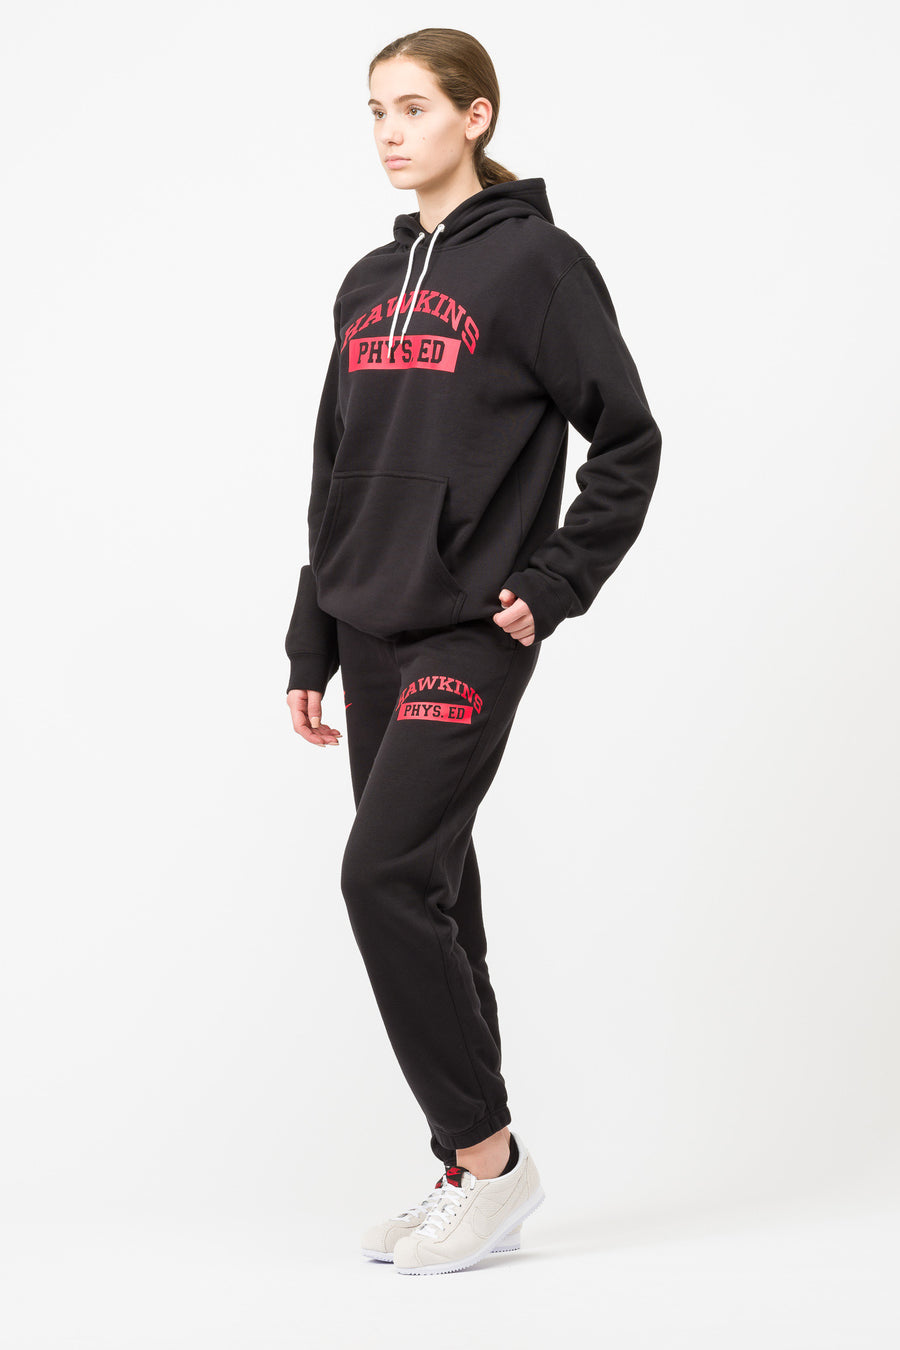 Nike Stranger Things Hawkins Phys Ed Hoodie in Black/Red - Notre